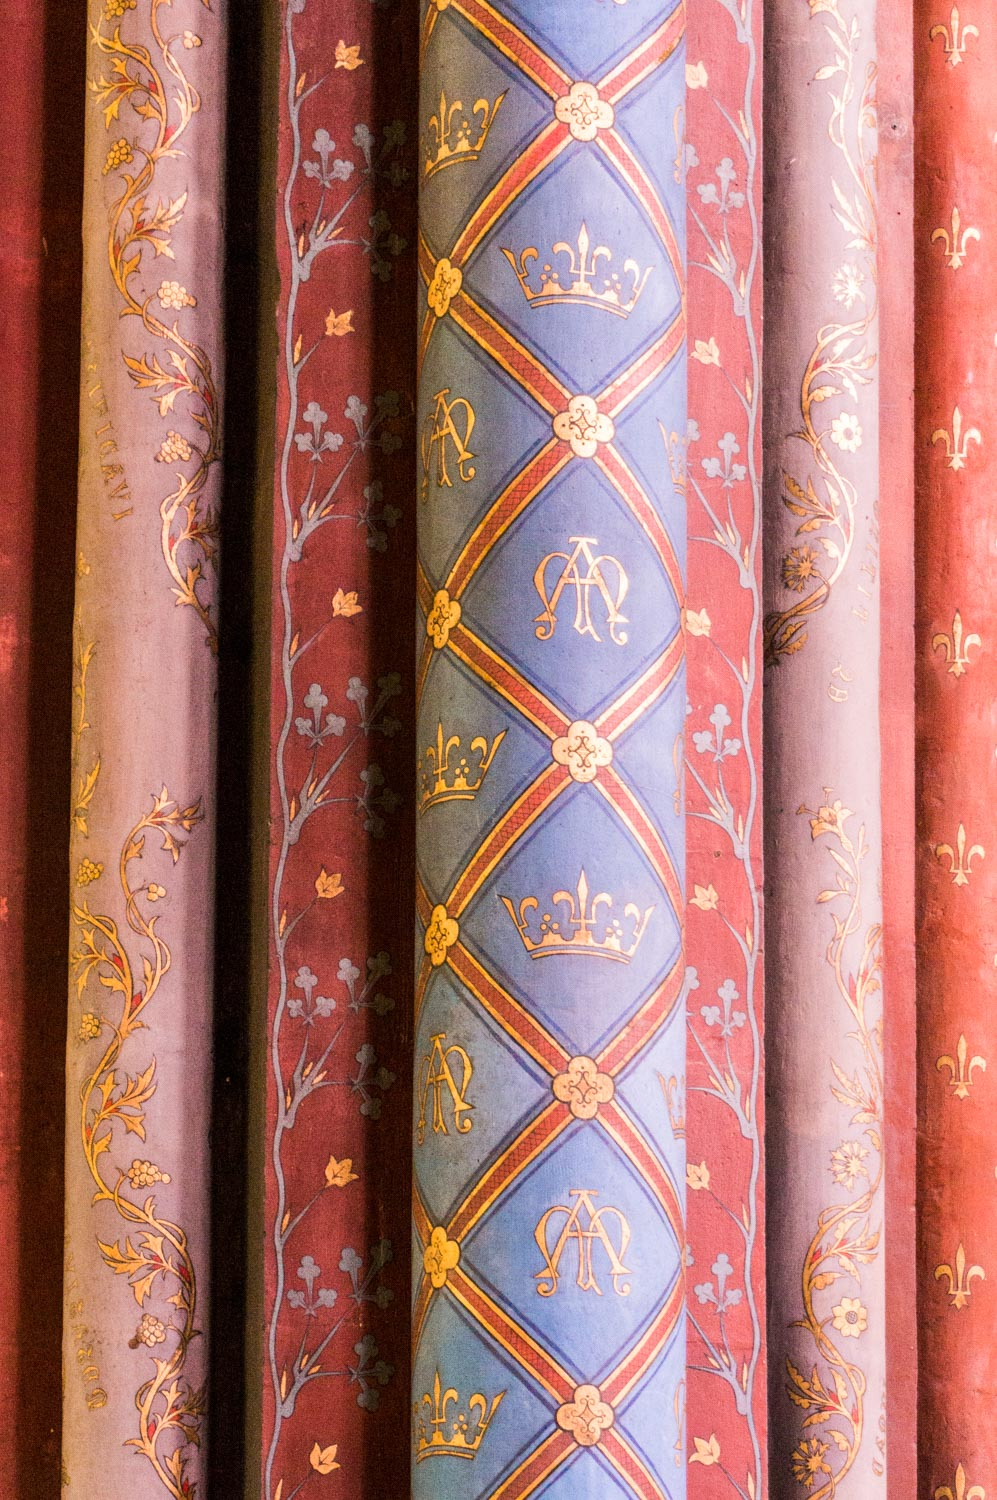 The amazingly colourful columns of the church